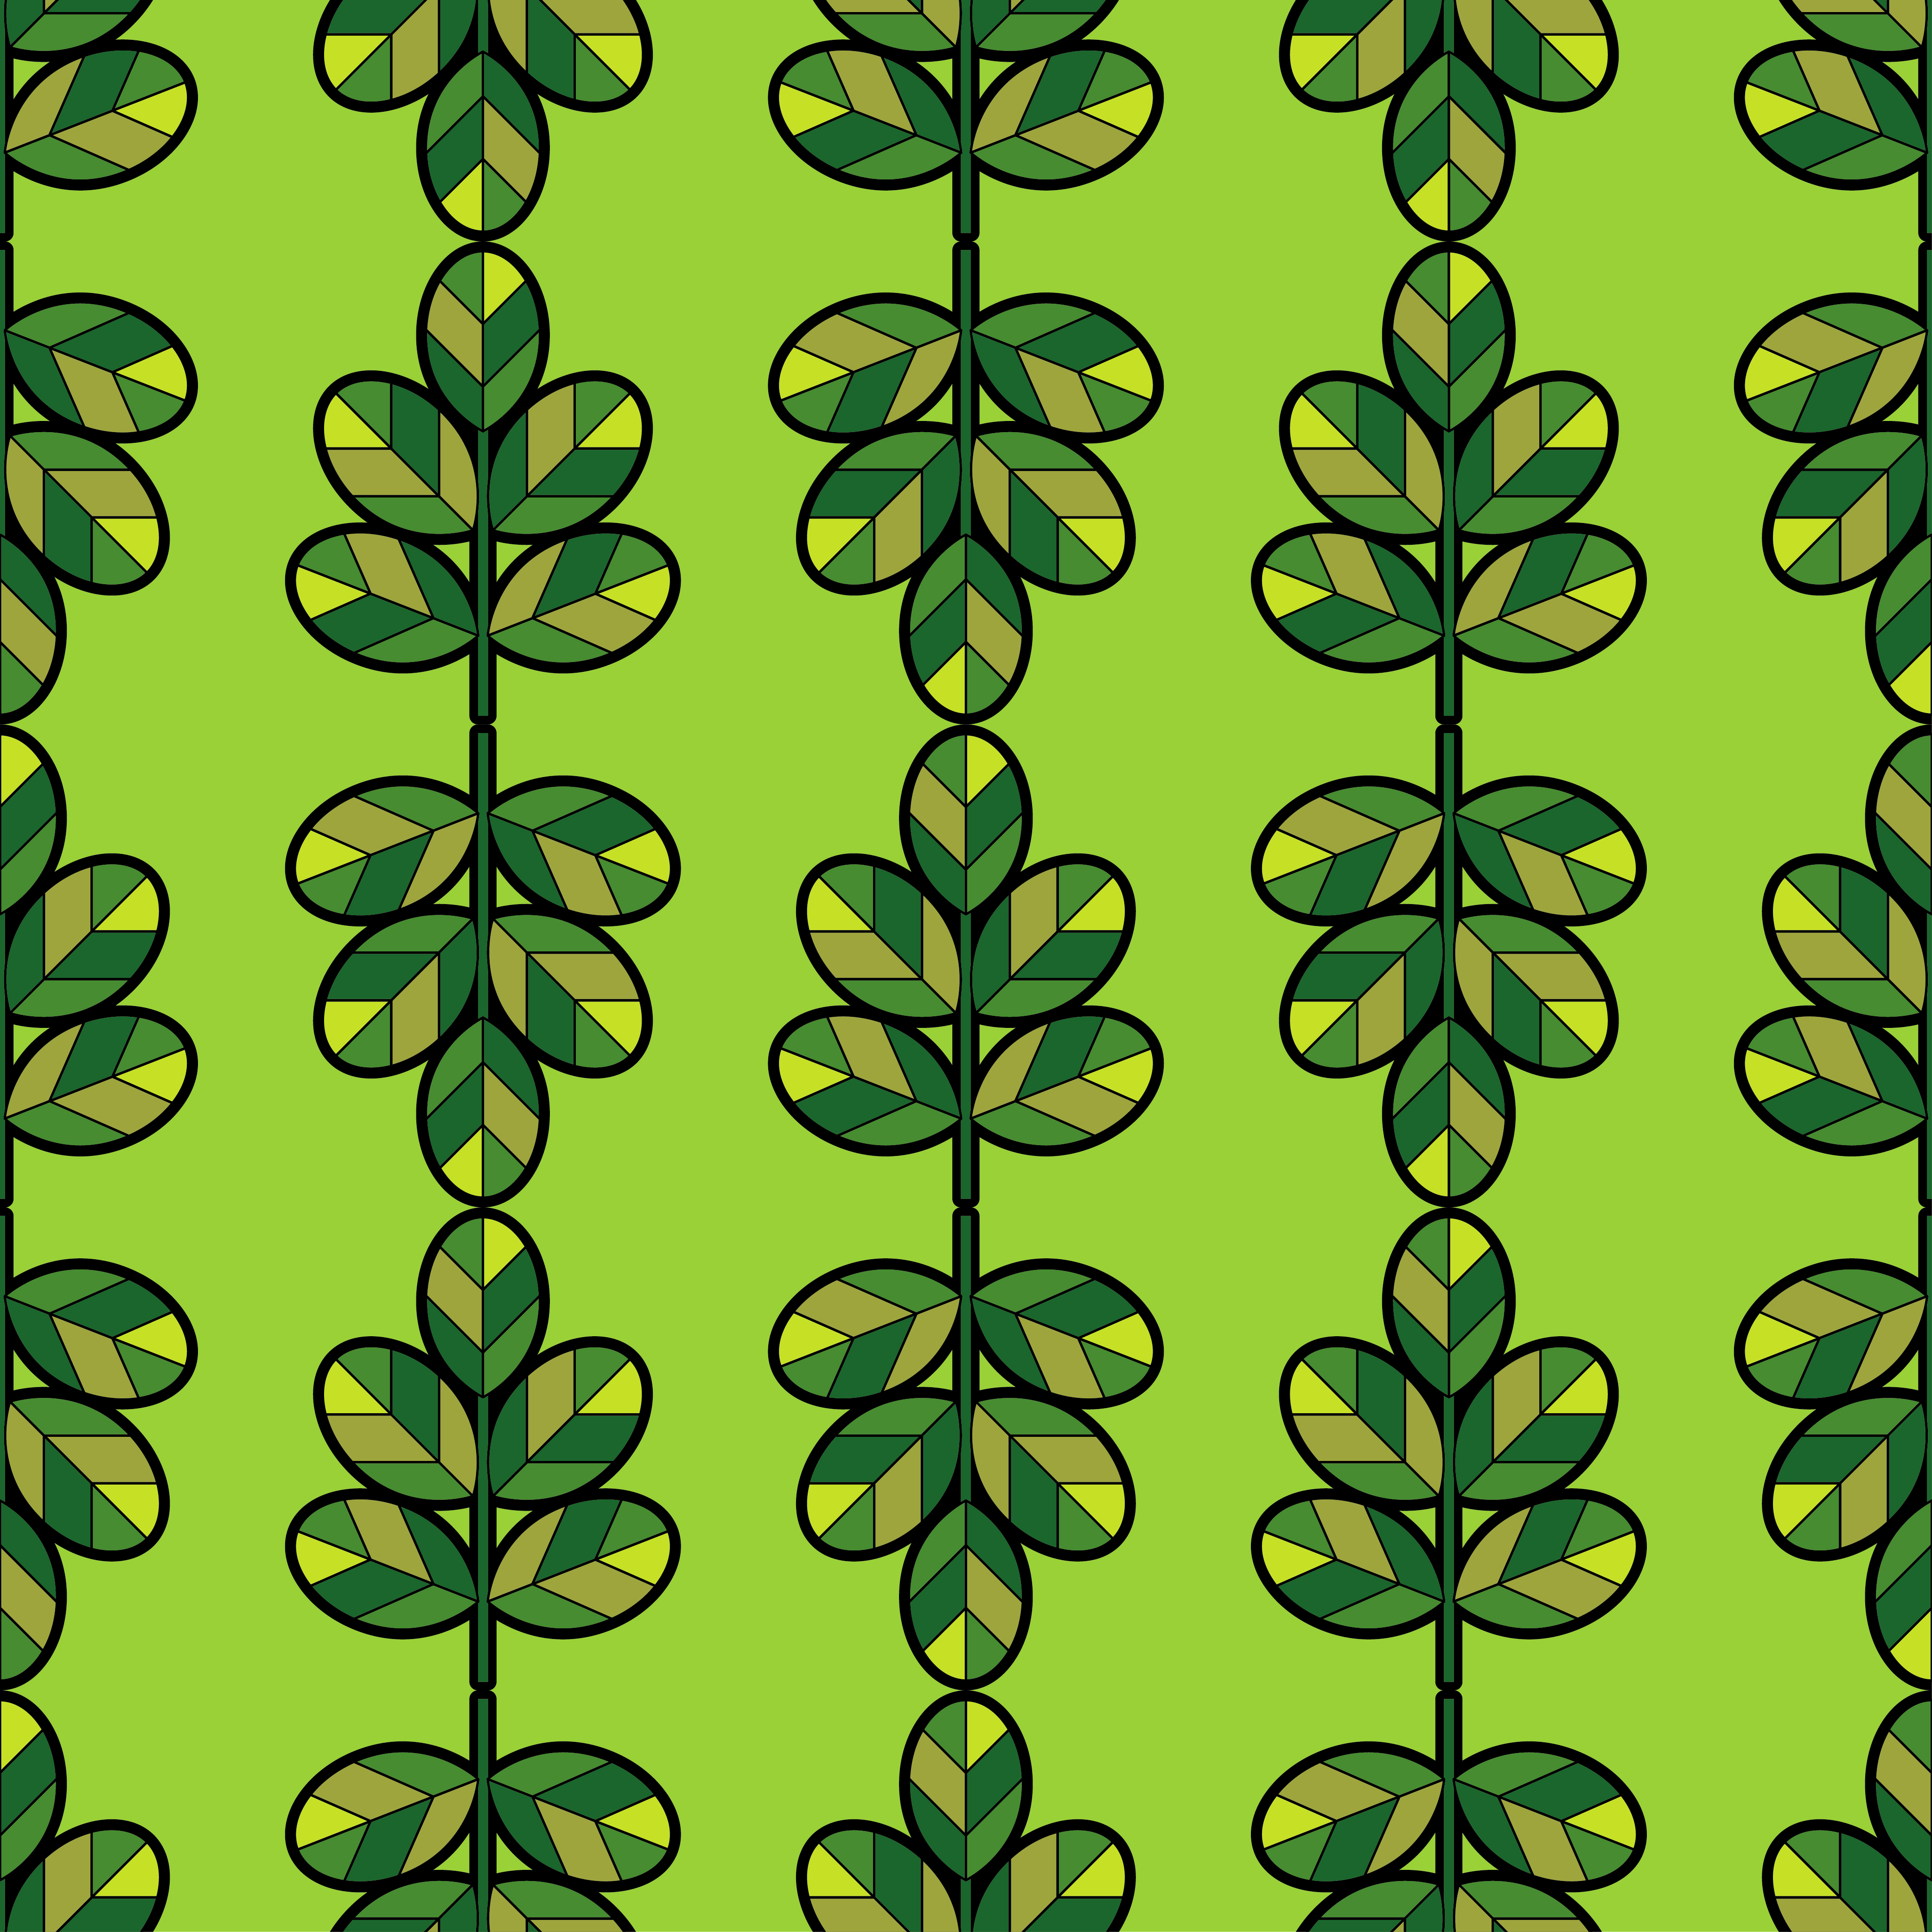 Seamless background with decorative green leaves with a black outline on a green background. Vector illustration. Flat design.  example image 1